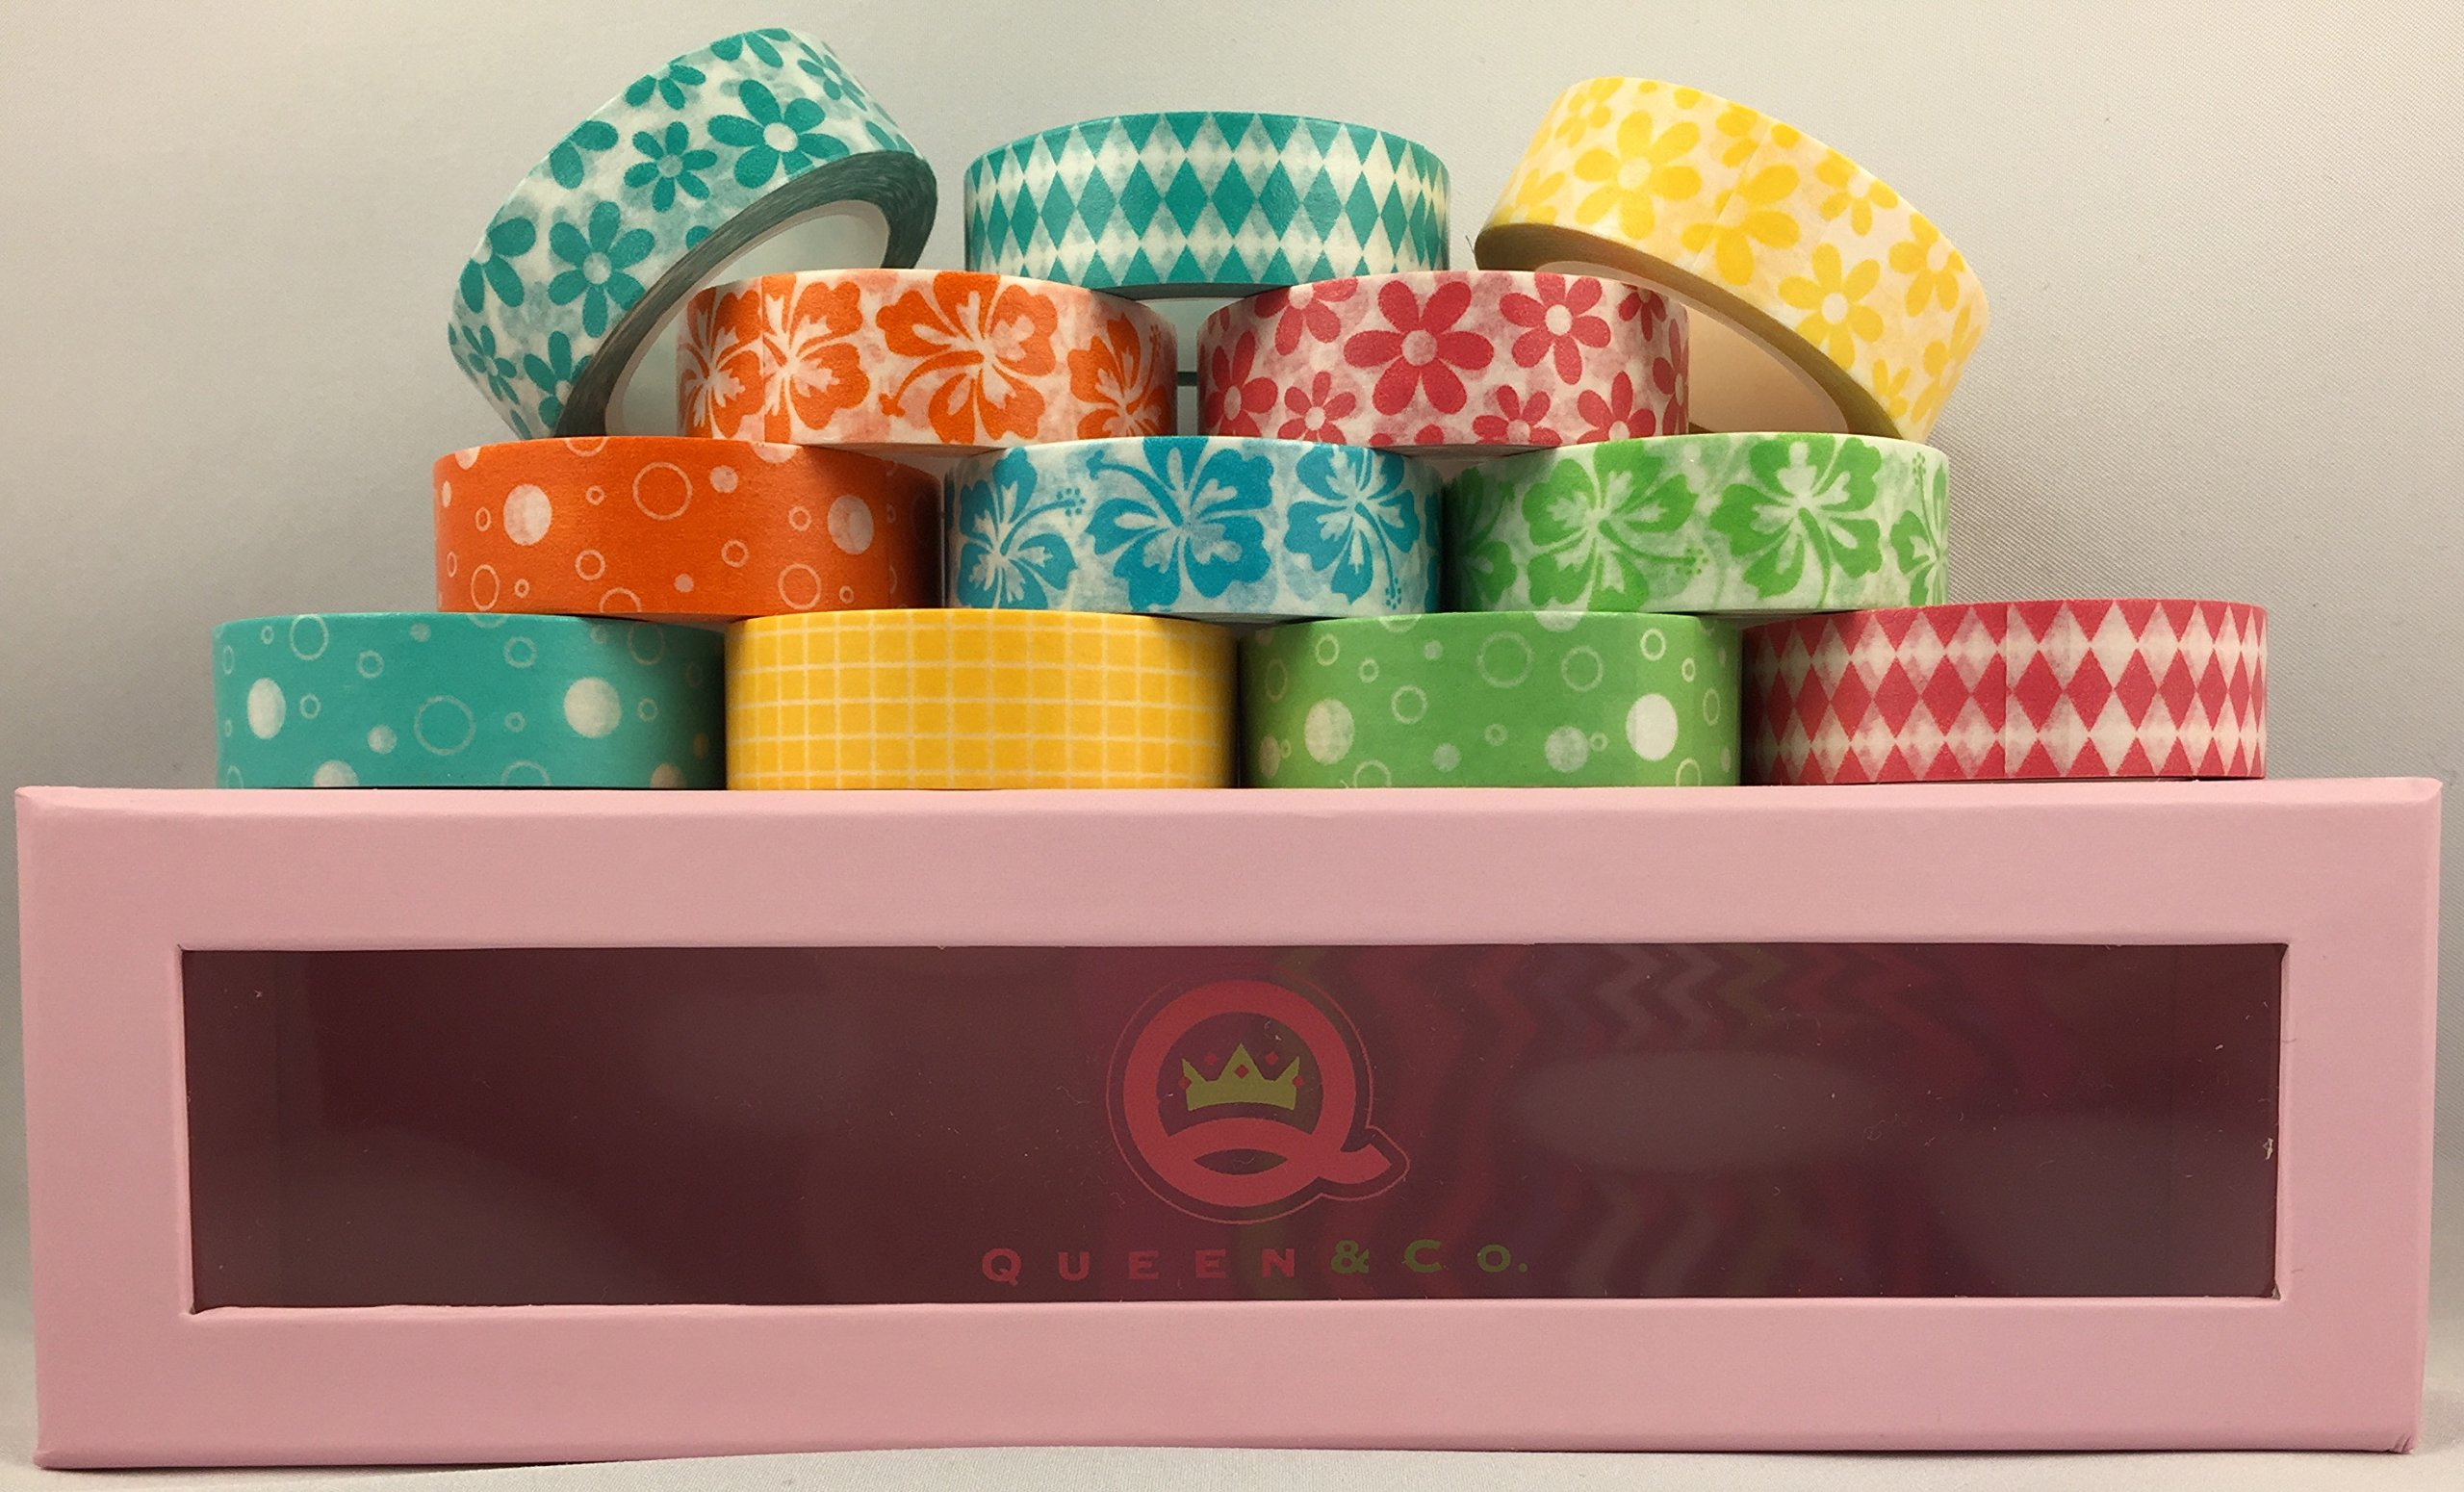 Washi Trendy Tape - Flowers, Diamonds, Bubbles, Polkadots, Grid - Self-adhesive Removeable Paper Tape Bundle of 12 Rolls, Each 1/2'' X 10 Yards in a Cute Limited Edition Pink Polkadot Storage Box, By Queen & Co. by Queen